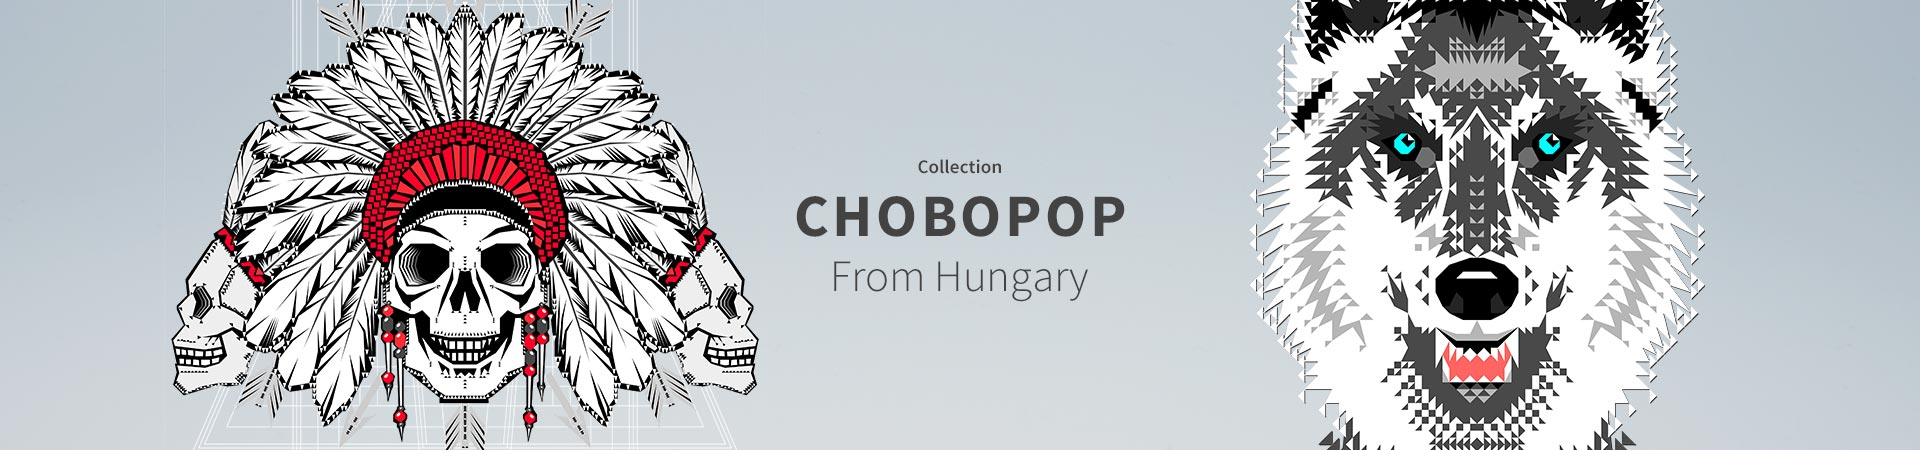 Collection Chobopop